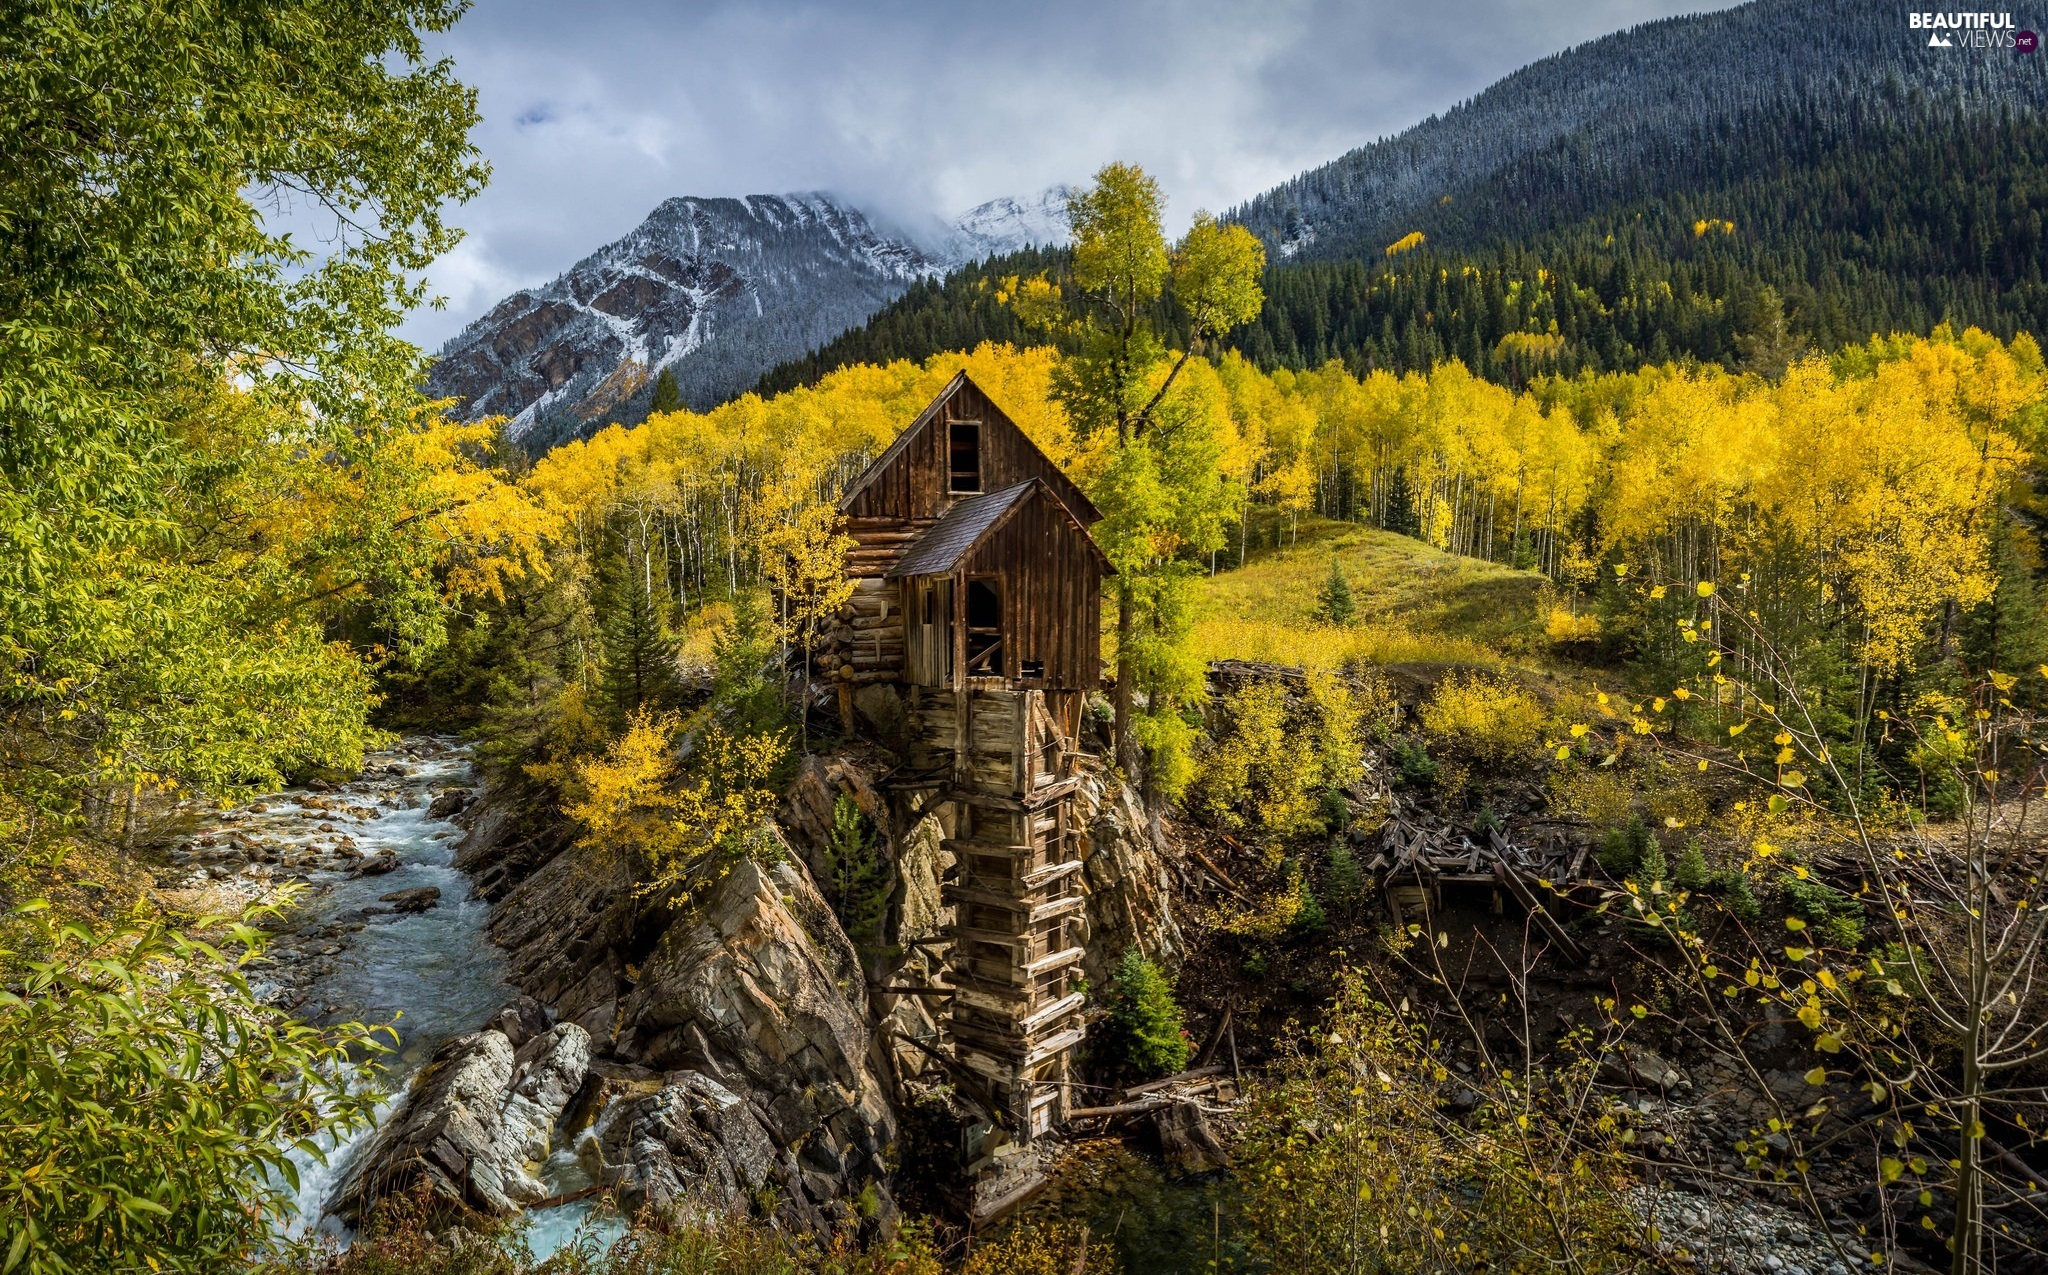 forest, trees, viewes, River, Mountains, The United States, State of Colorado, autumn, Crystal Mill